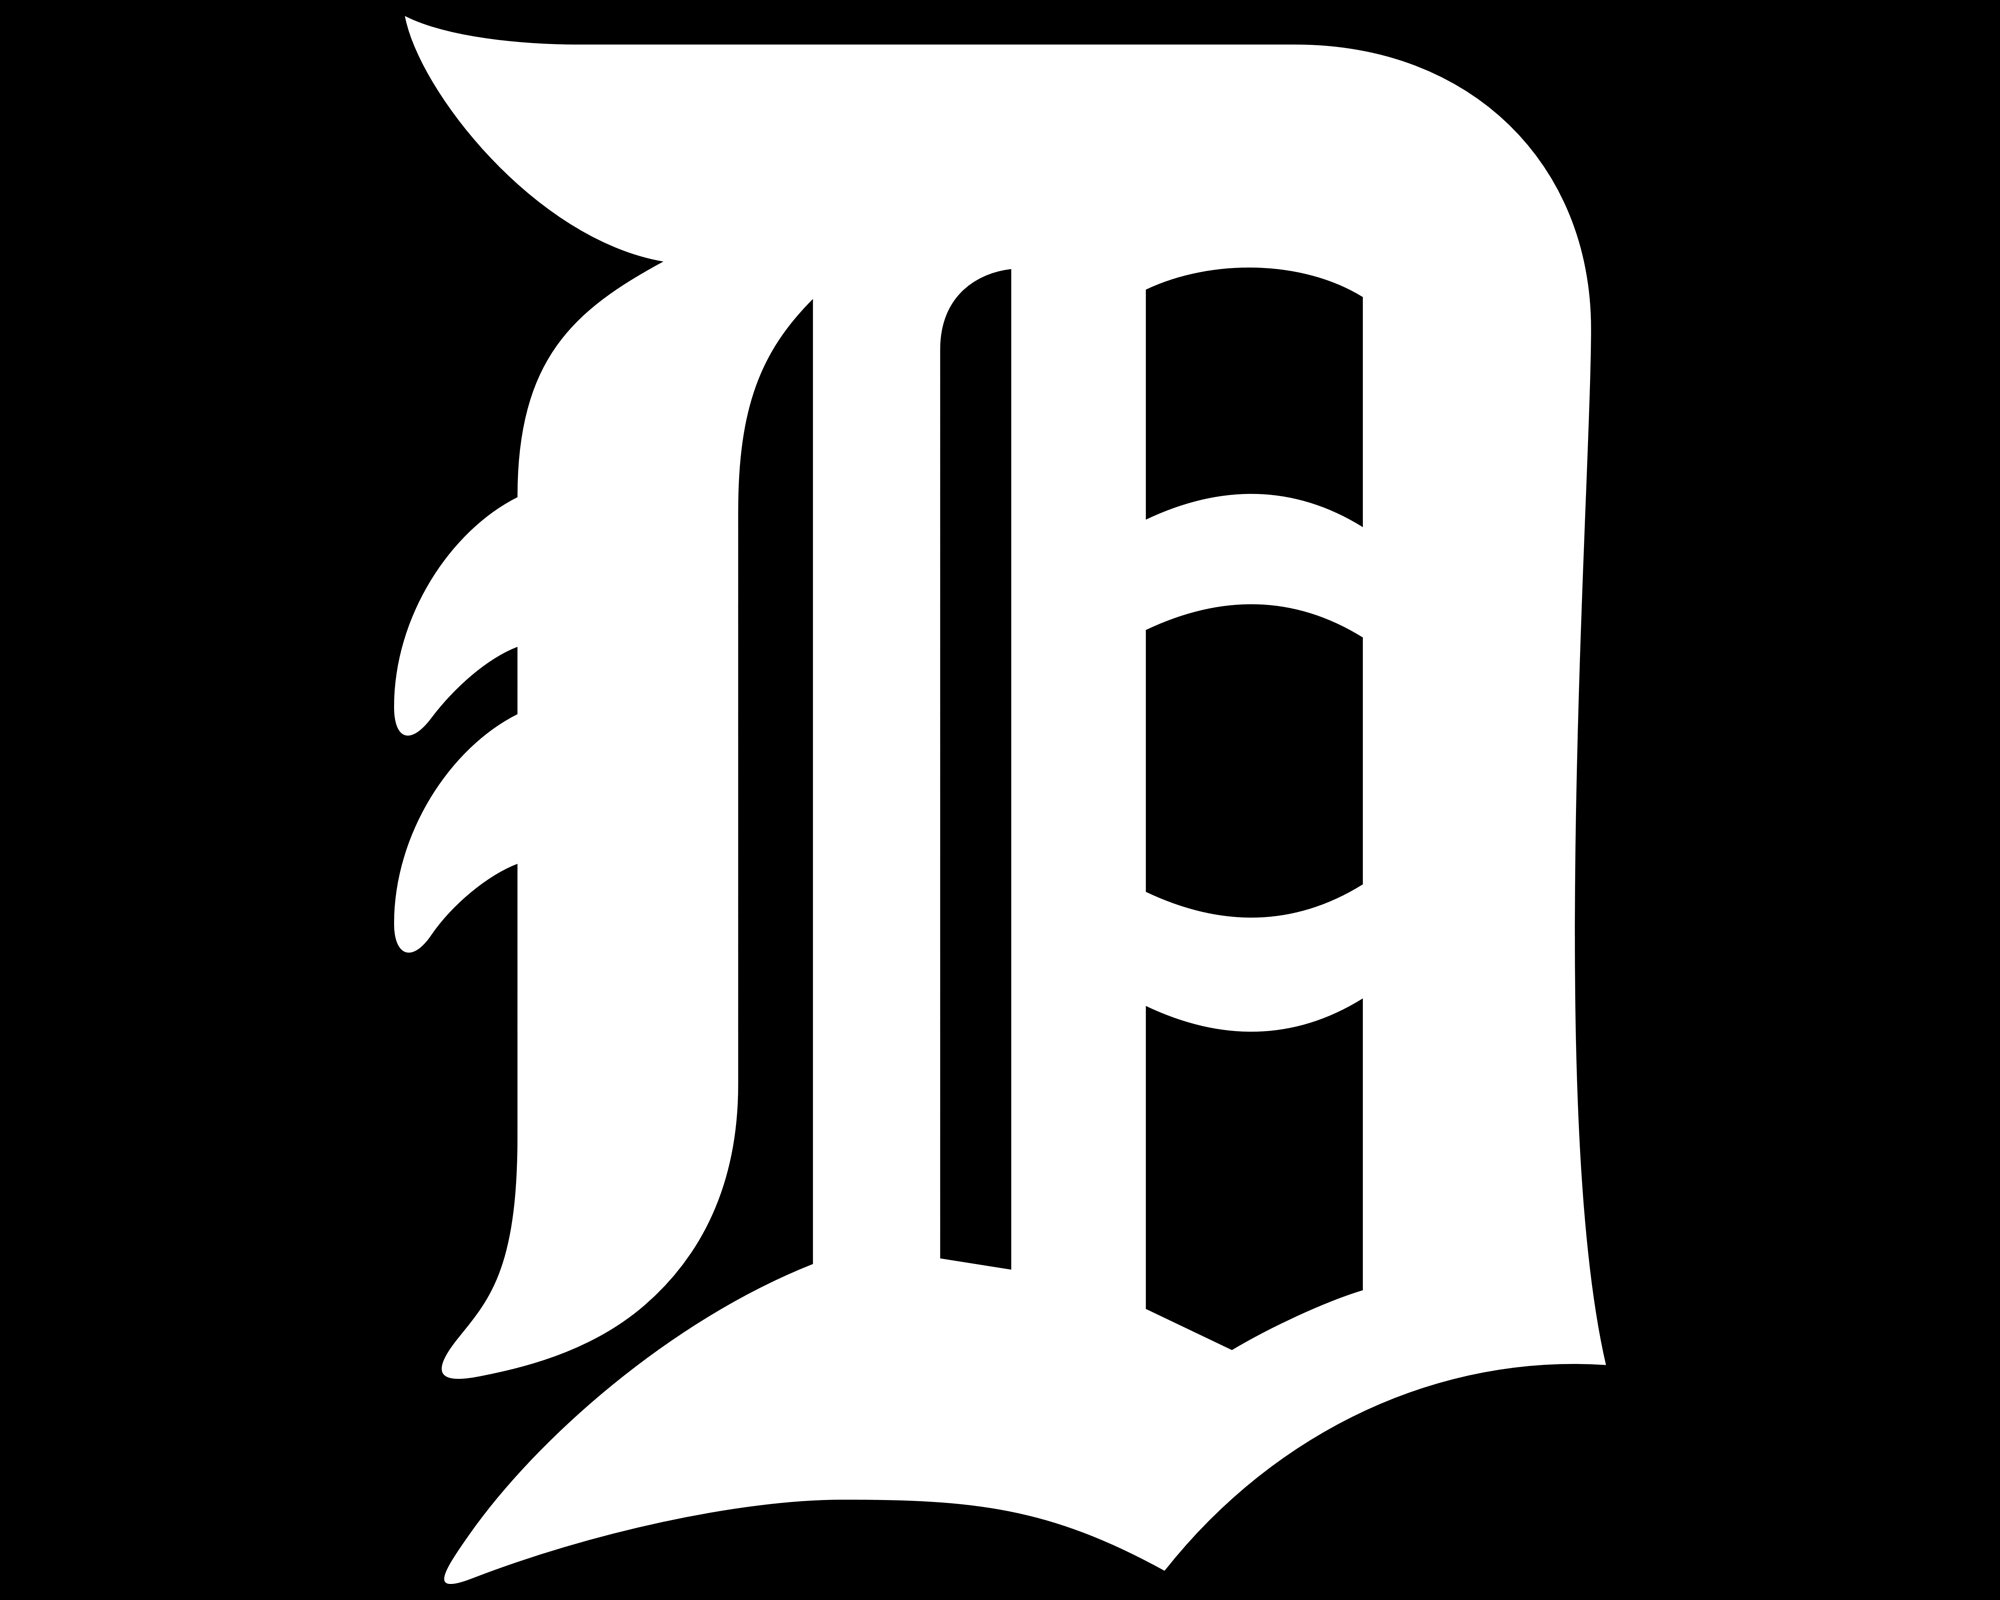 detroit tigers logo detroit tigers symbol meaning history and rh 1000logos net  detroit tigers d logo font